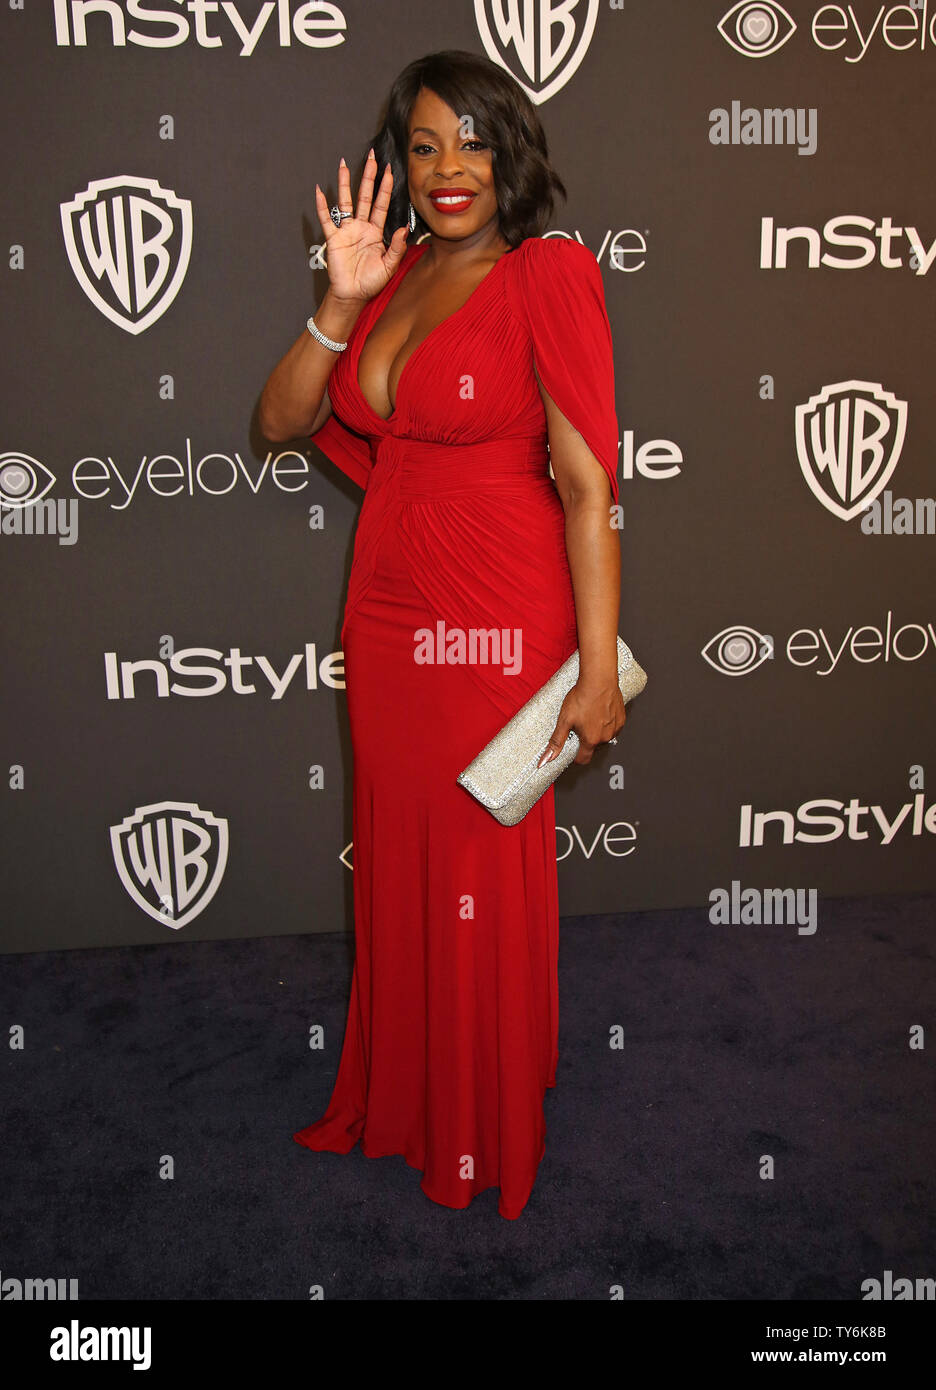 Niecy Nash attends the 18th annual InStyle and Warner Bros. Golden Globe after-party at the Beverly Hilton Hotel in Beverly Hills, California on January 8, 2017.  Photo by David Silpa/UPI - Stock Image